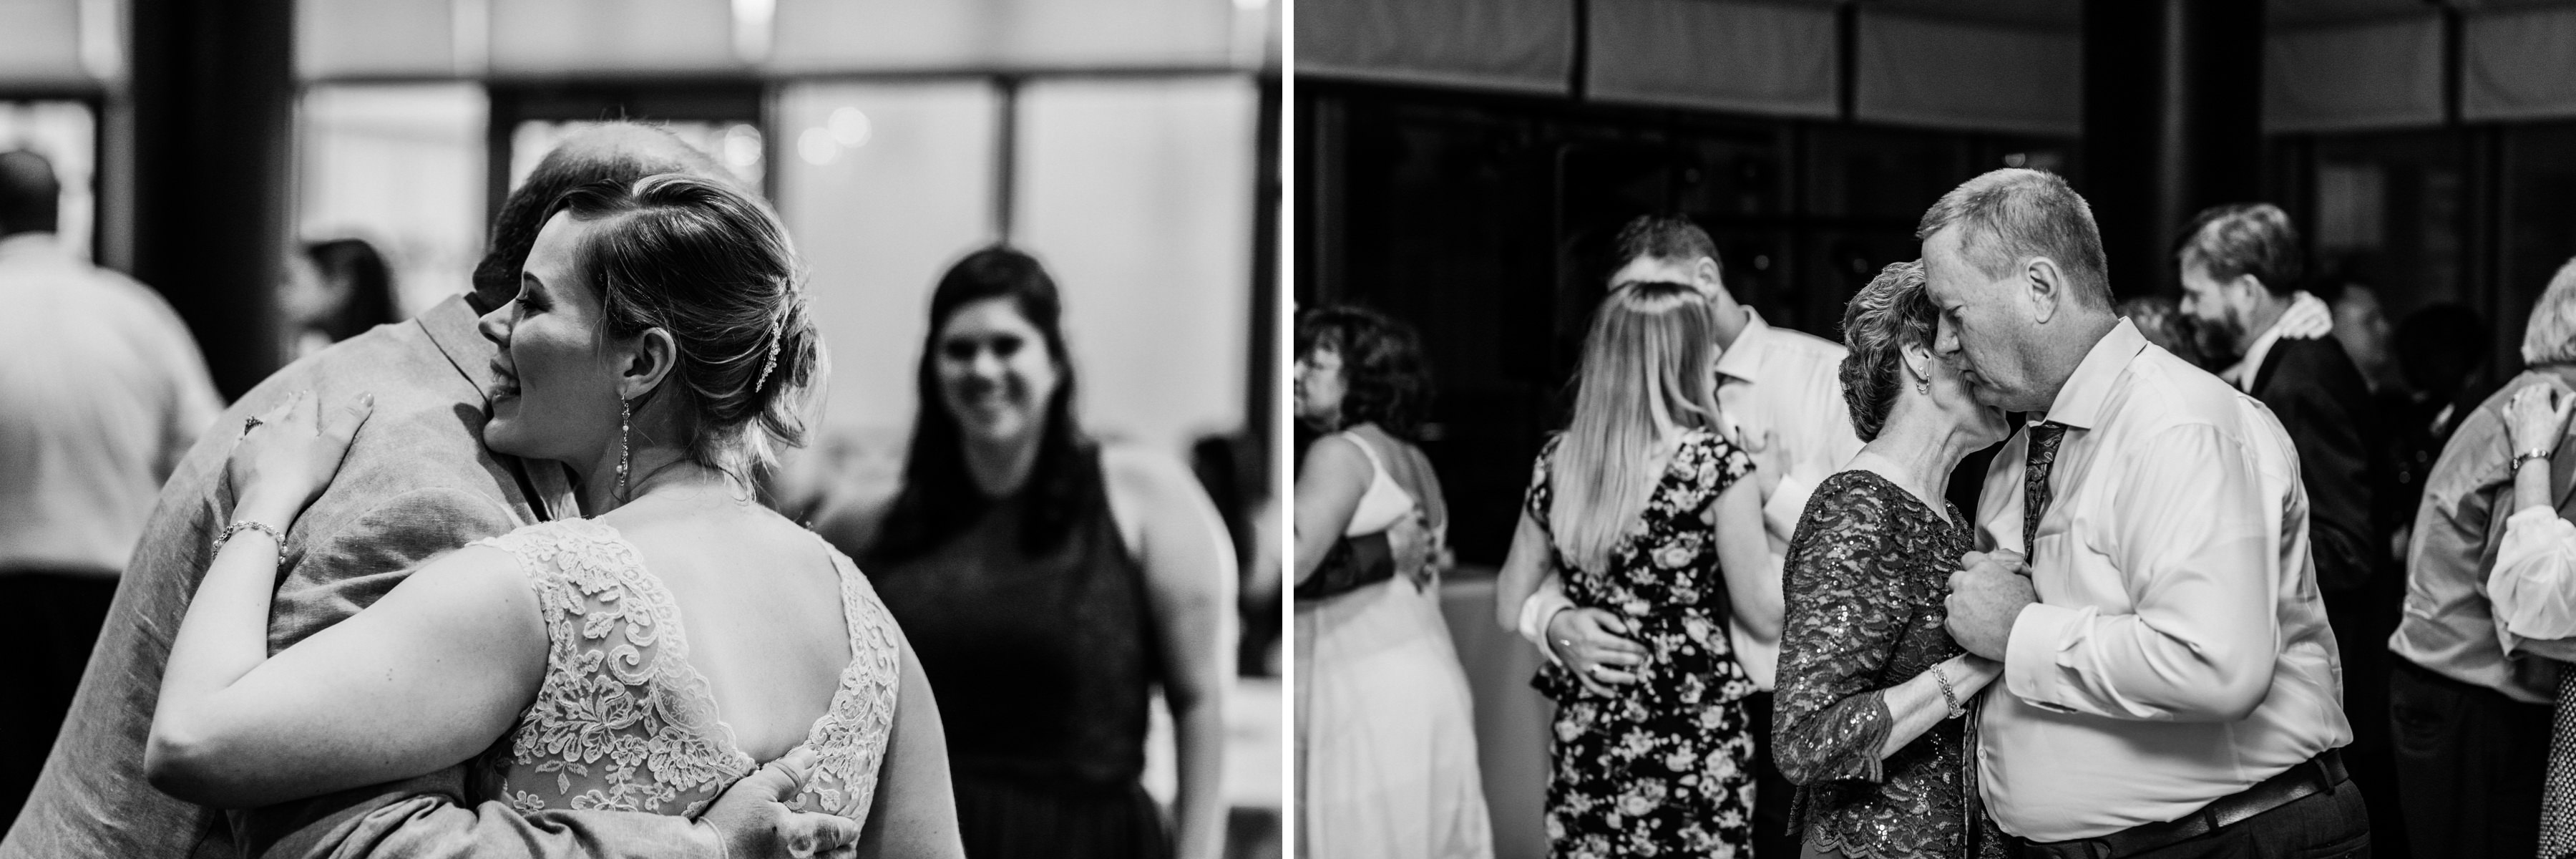 MAULDIN_WEDDING_MONTGOMERY_ALABAMA_WEDDING_PHOTOGRAPHY_126